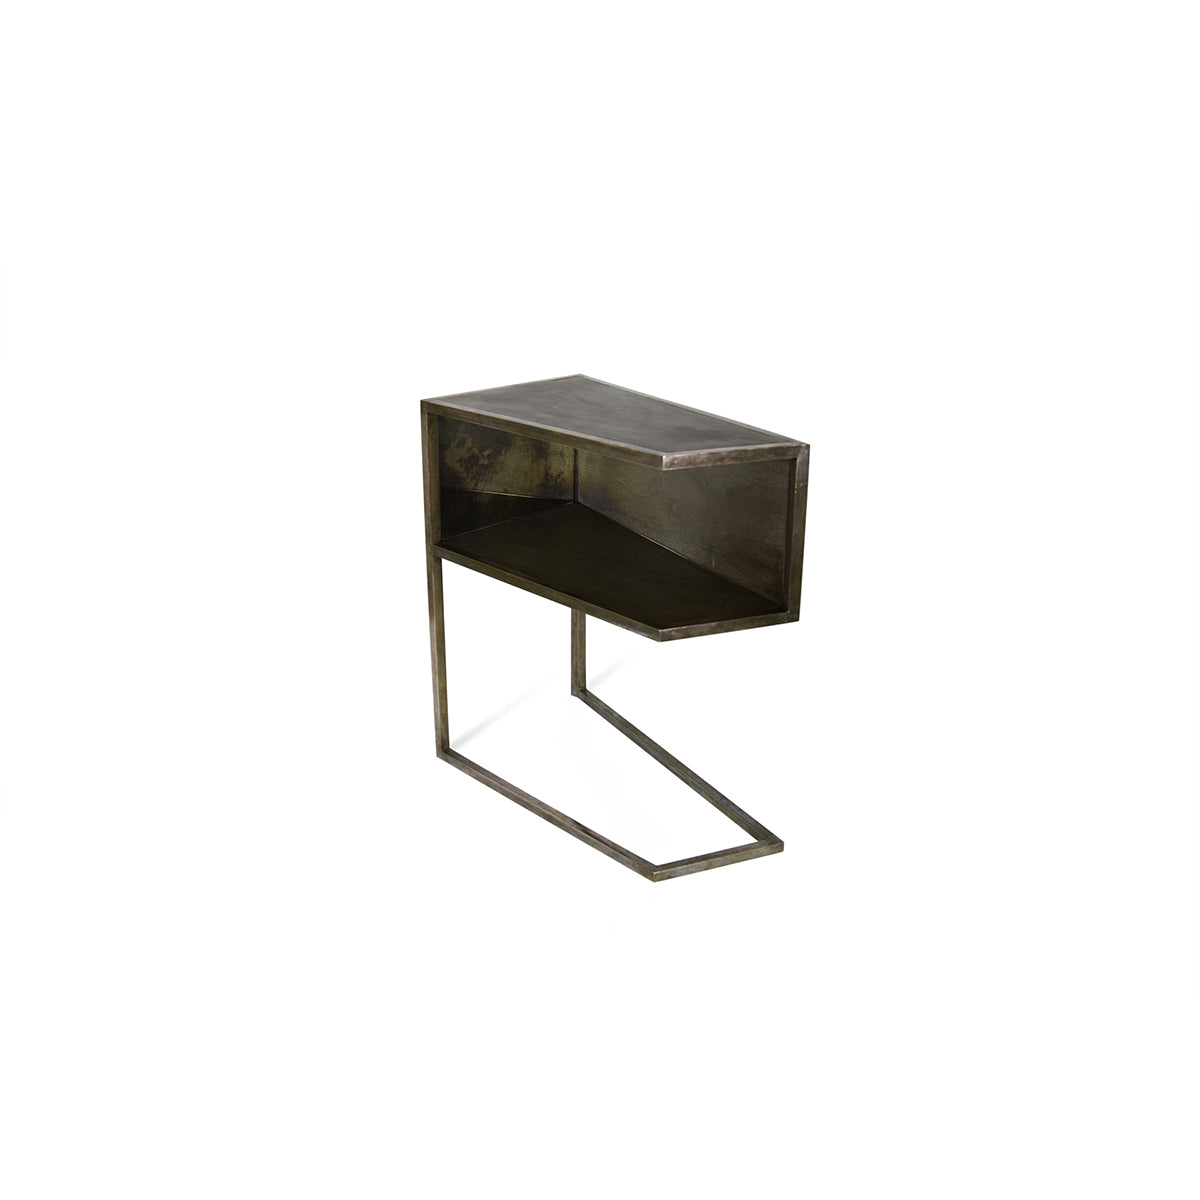 KLEINTIER, Nightstand//Table de chevet, Privatiselectionem  - SORS